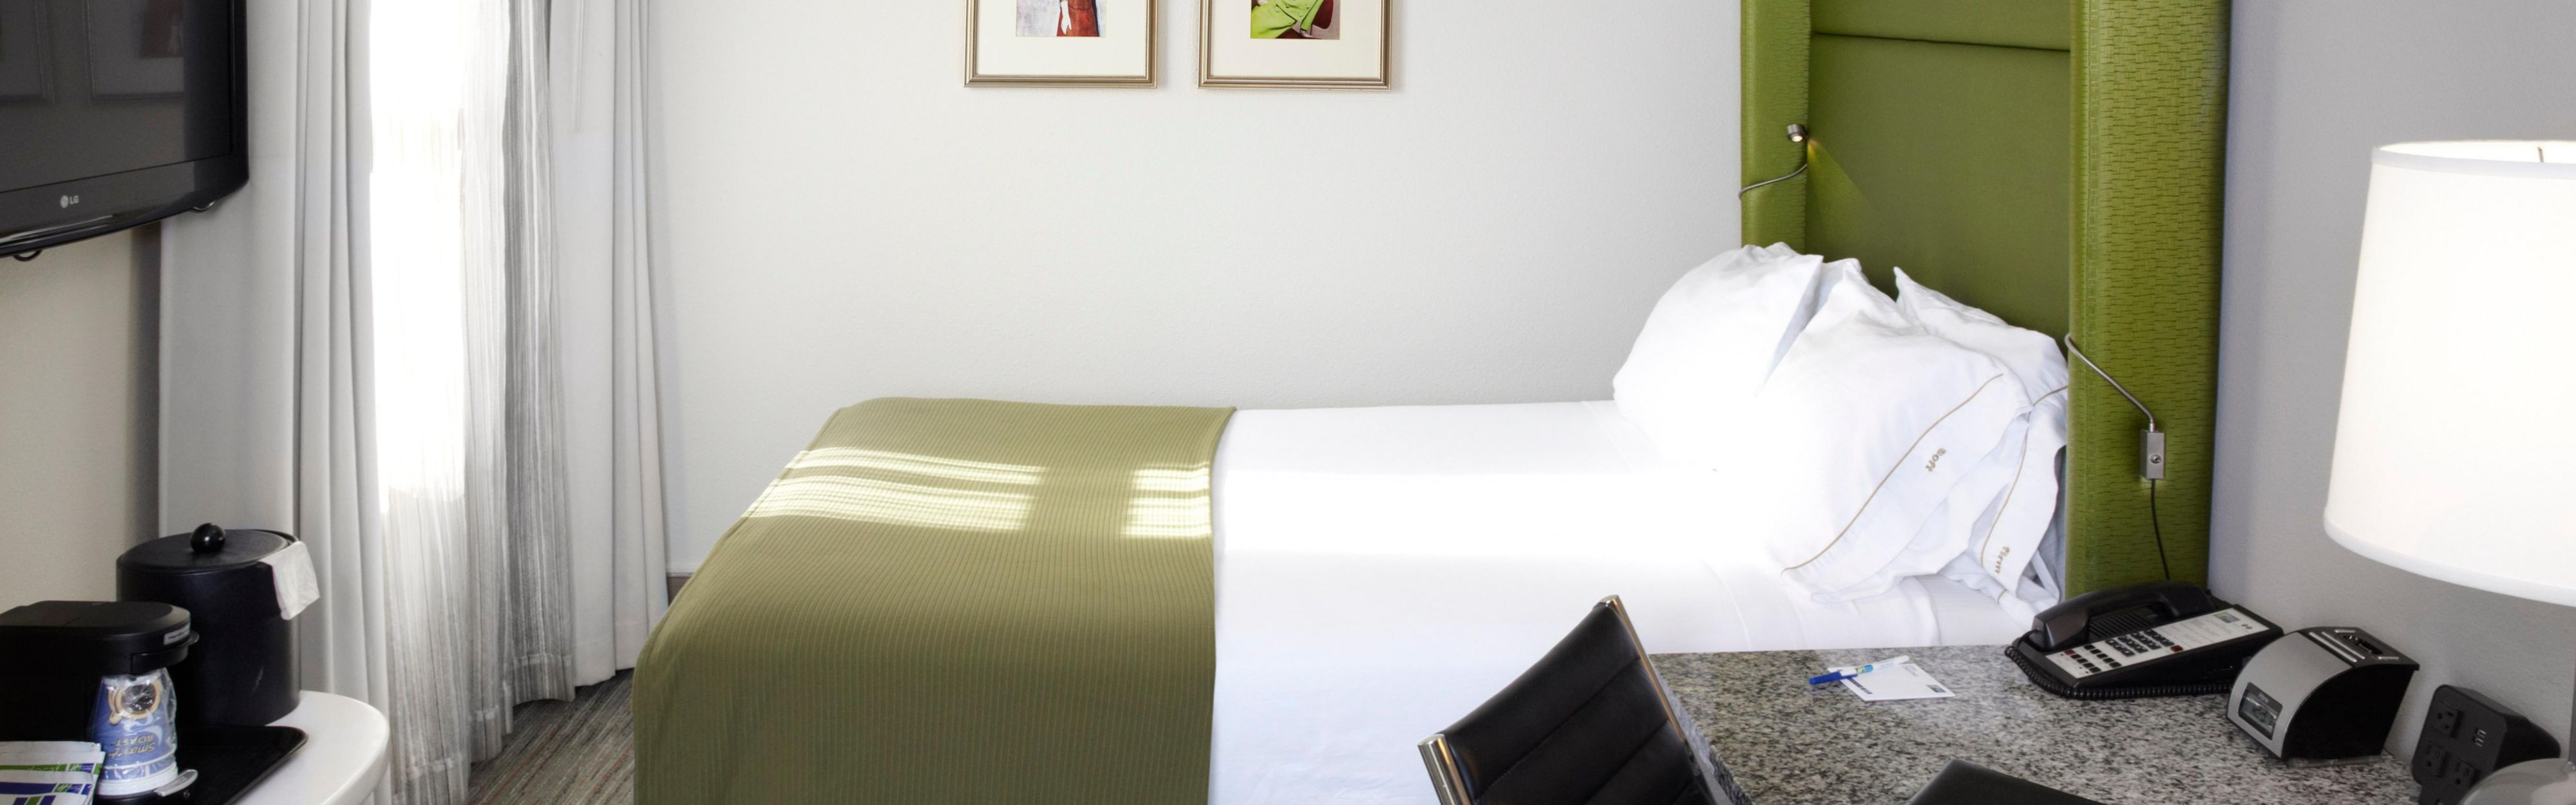 Holiday Inn Express Chicago - Magnificent Mile image 1